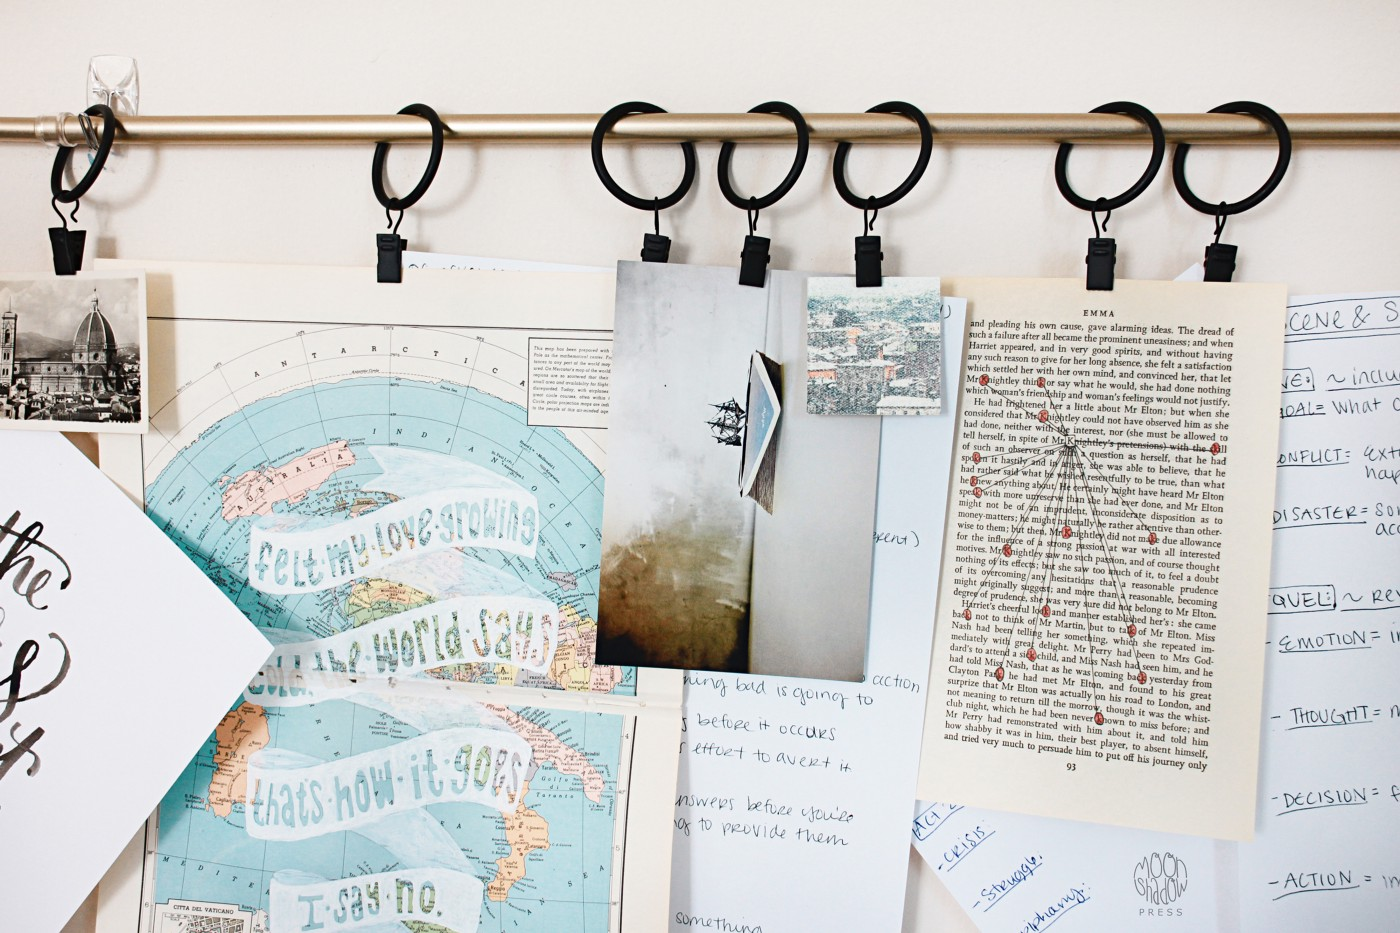 An arrangement of artwork, book pages, and postcards hanging on a wall.